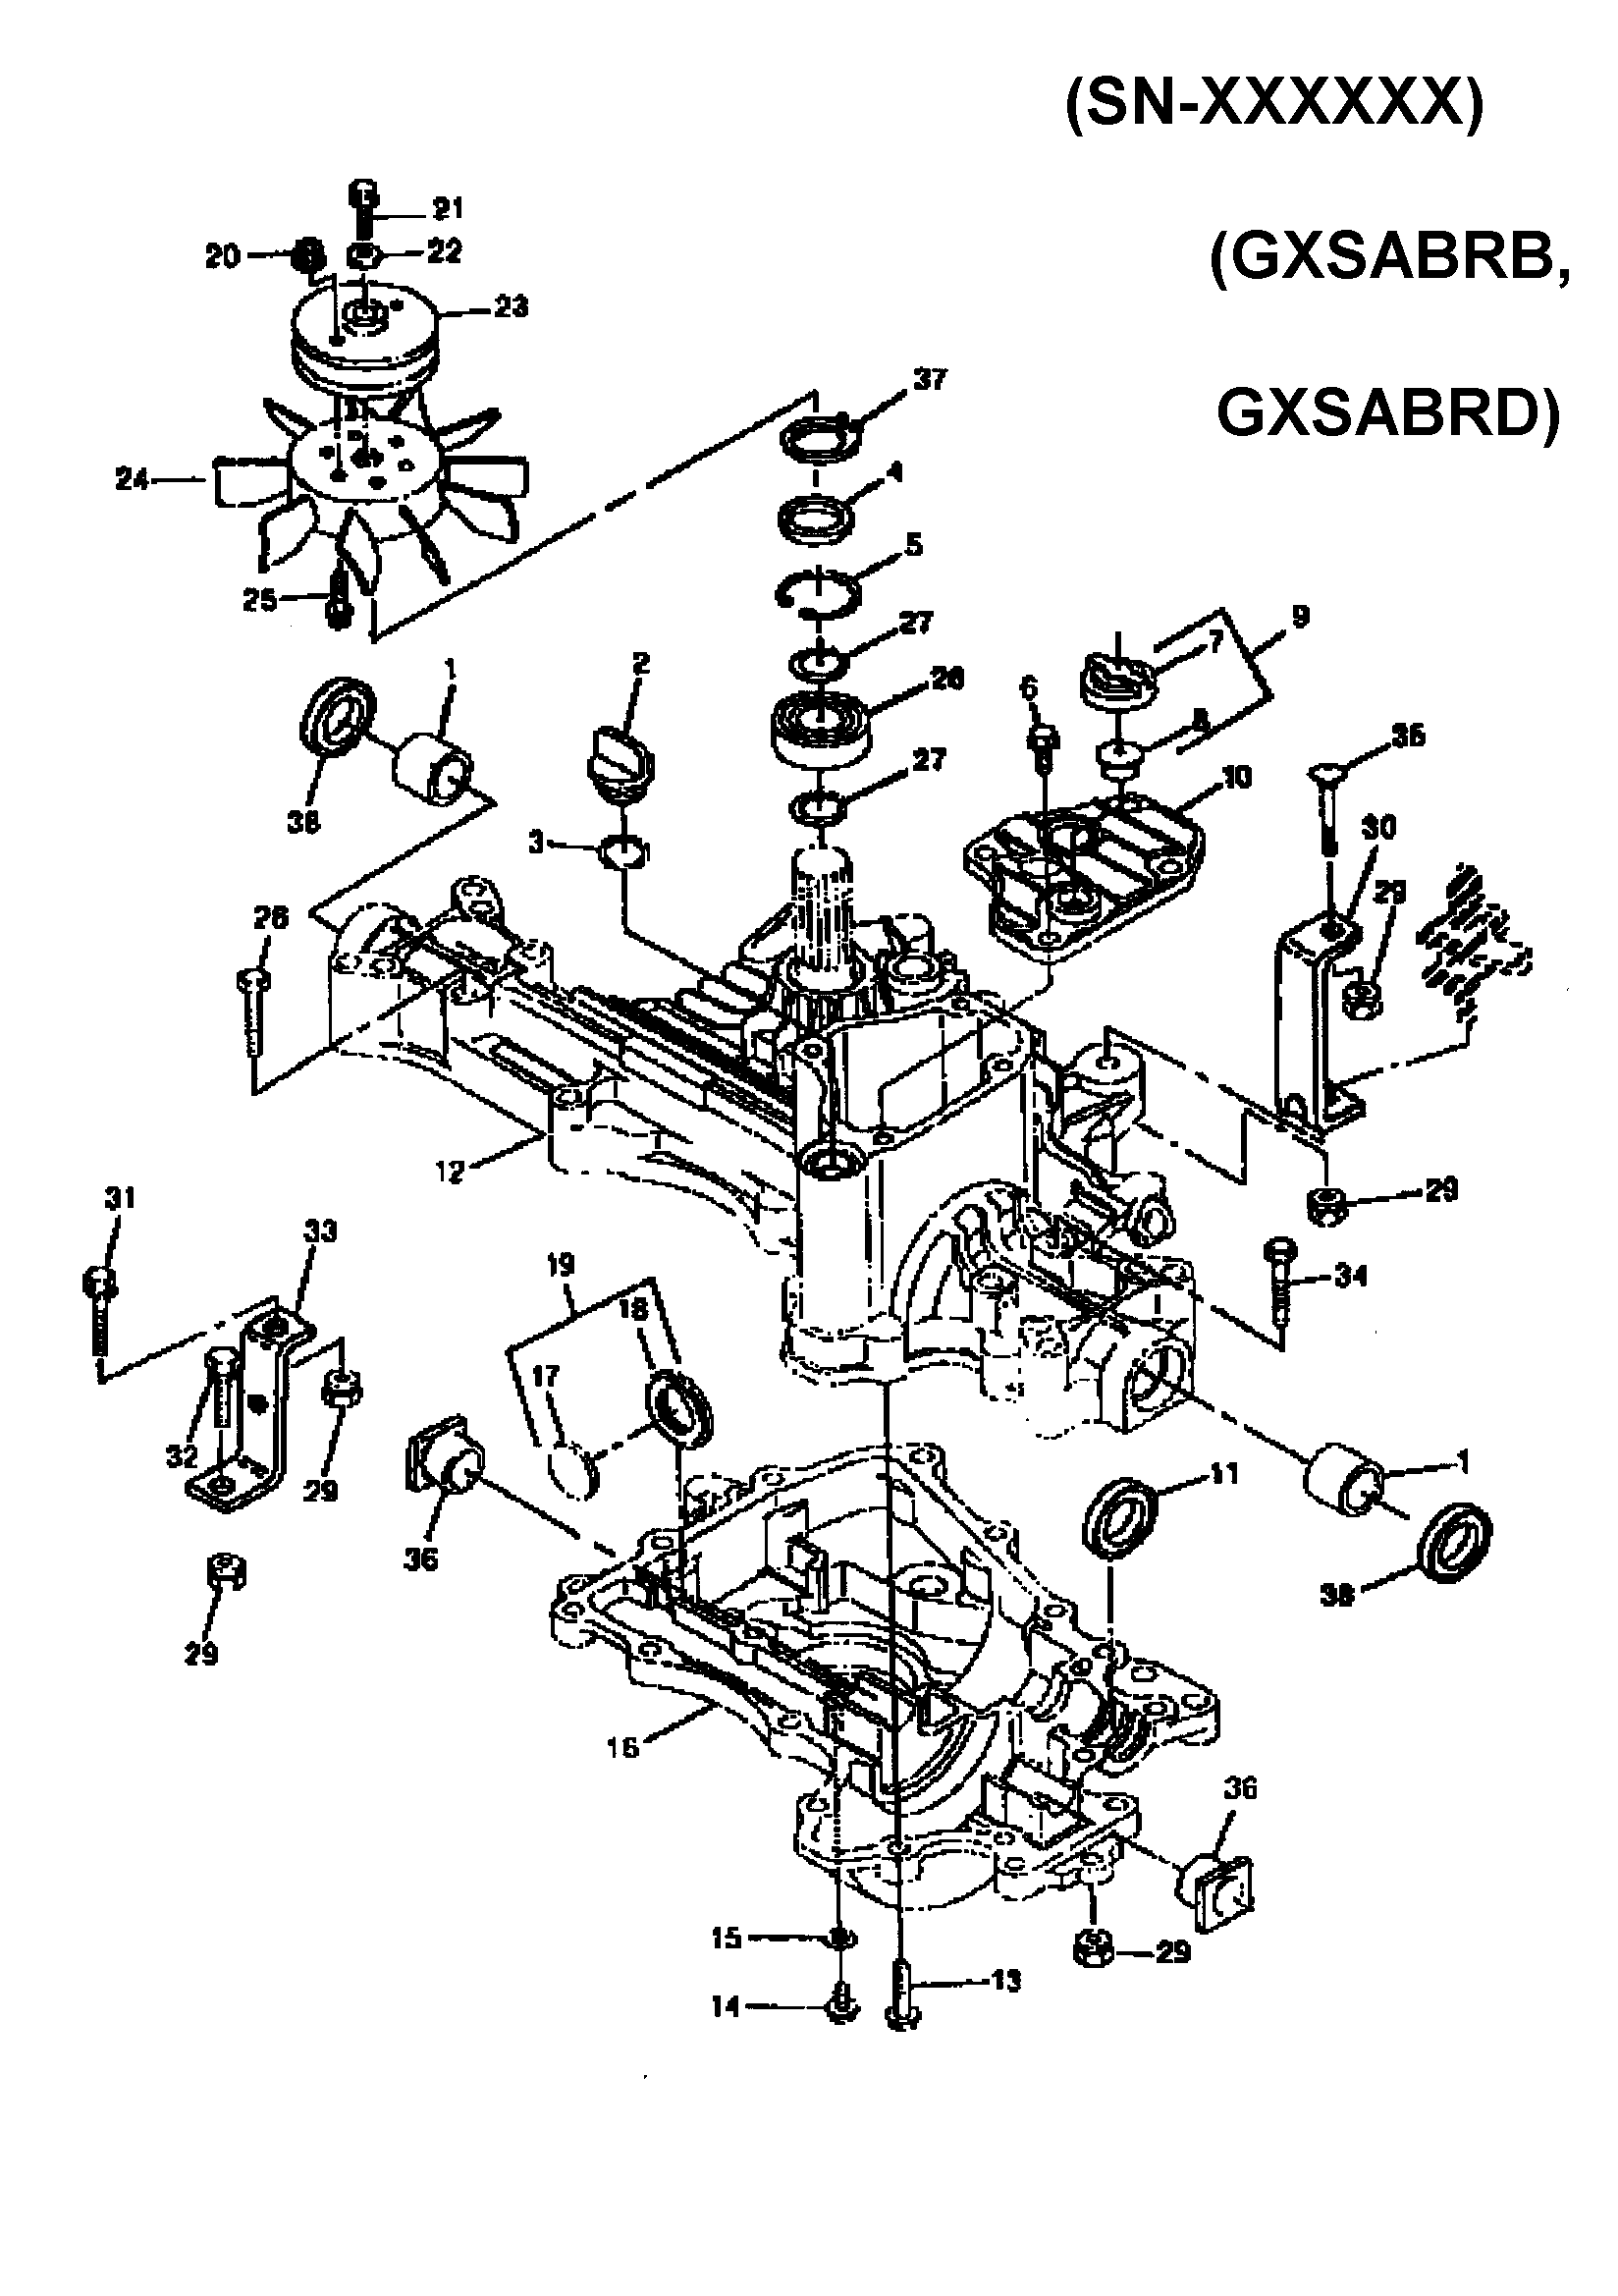 TRANSAXLE CASE (HYDRO) Diagram & Parts List for Model